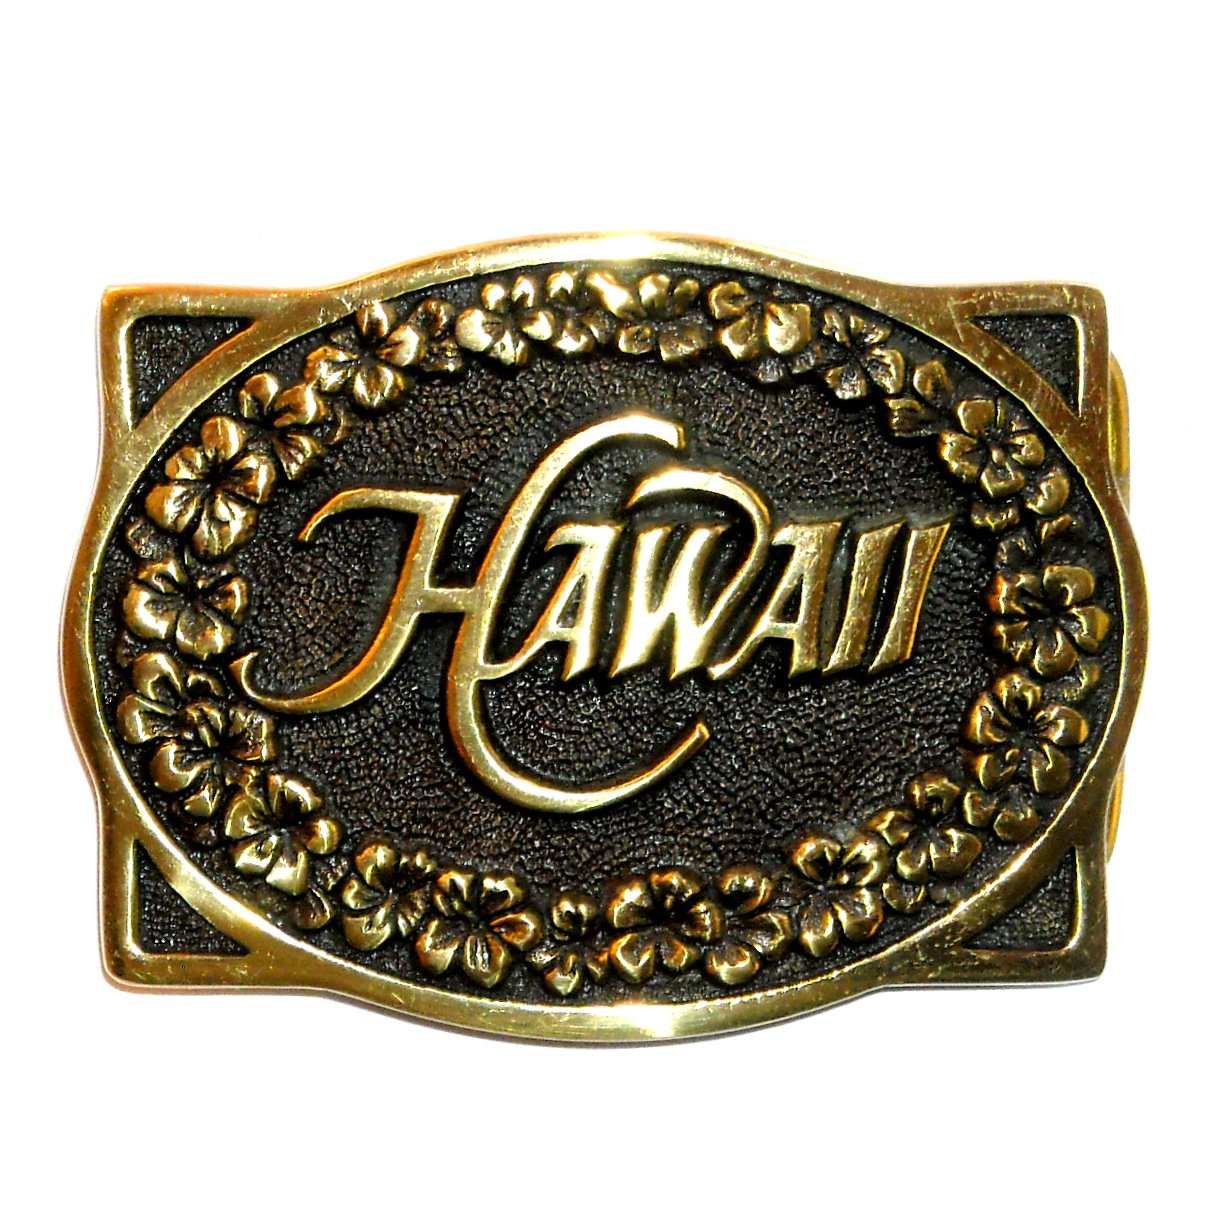 Heritage Mint Hawaii Solid Brass Vintage Belt Buckle